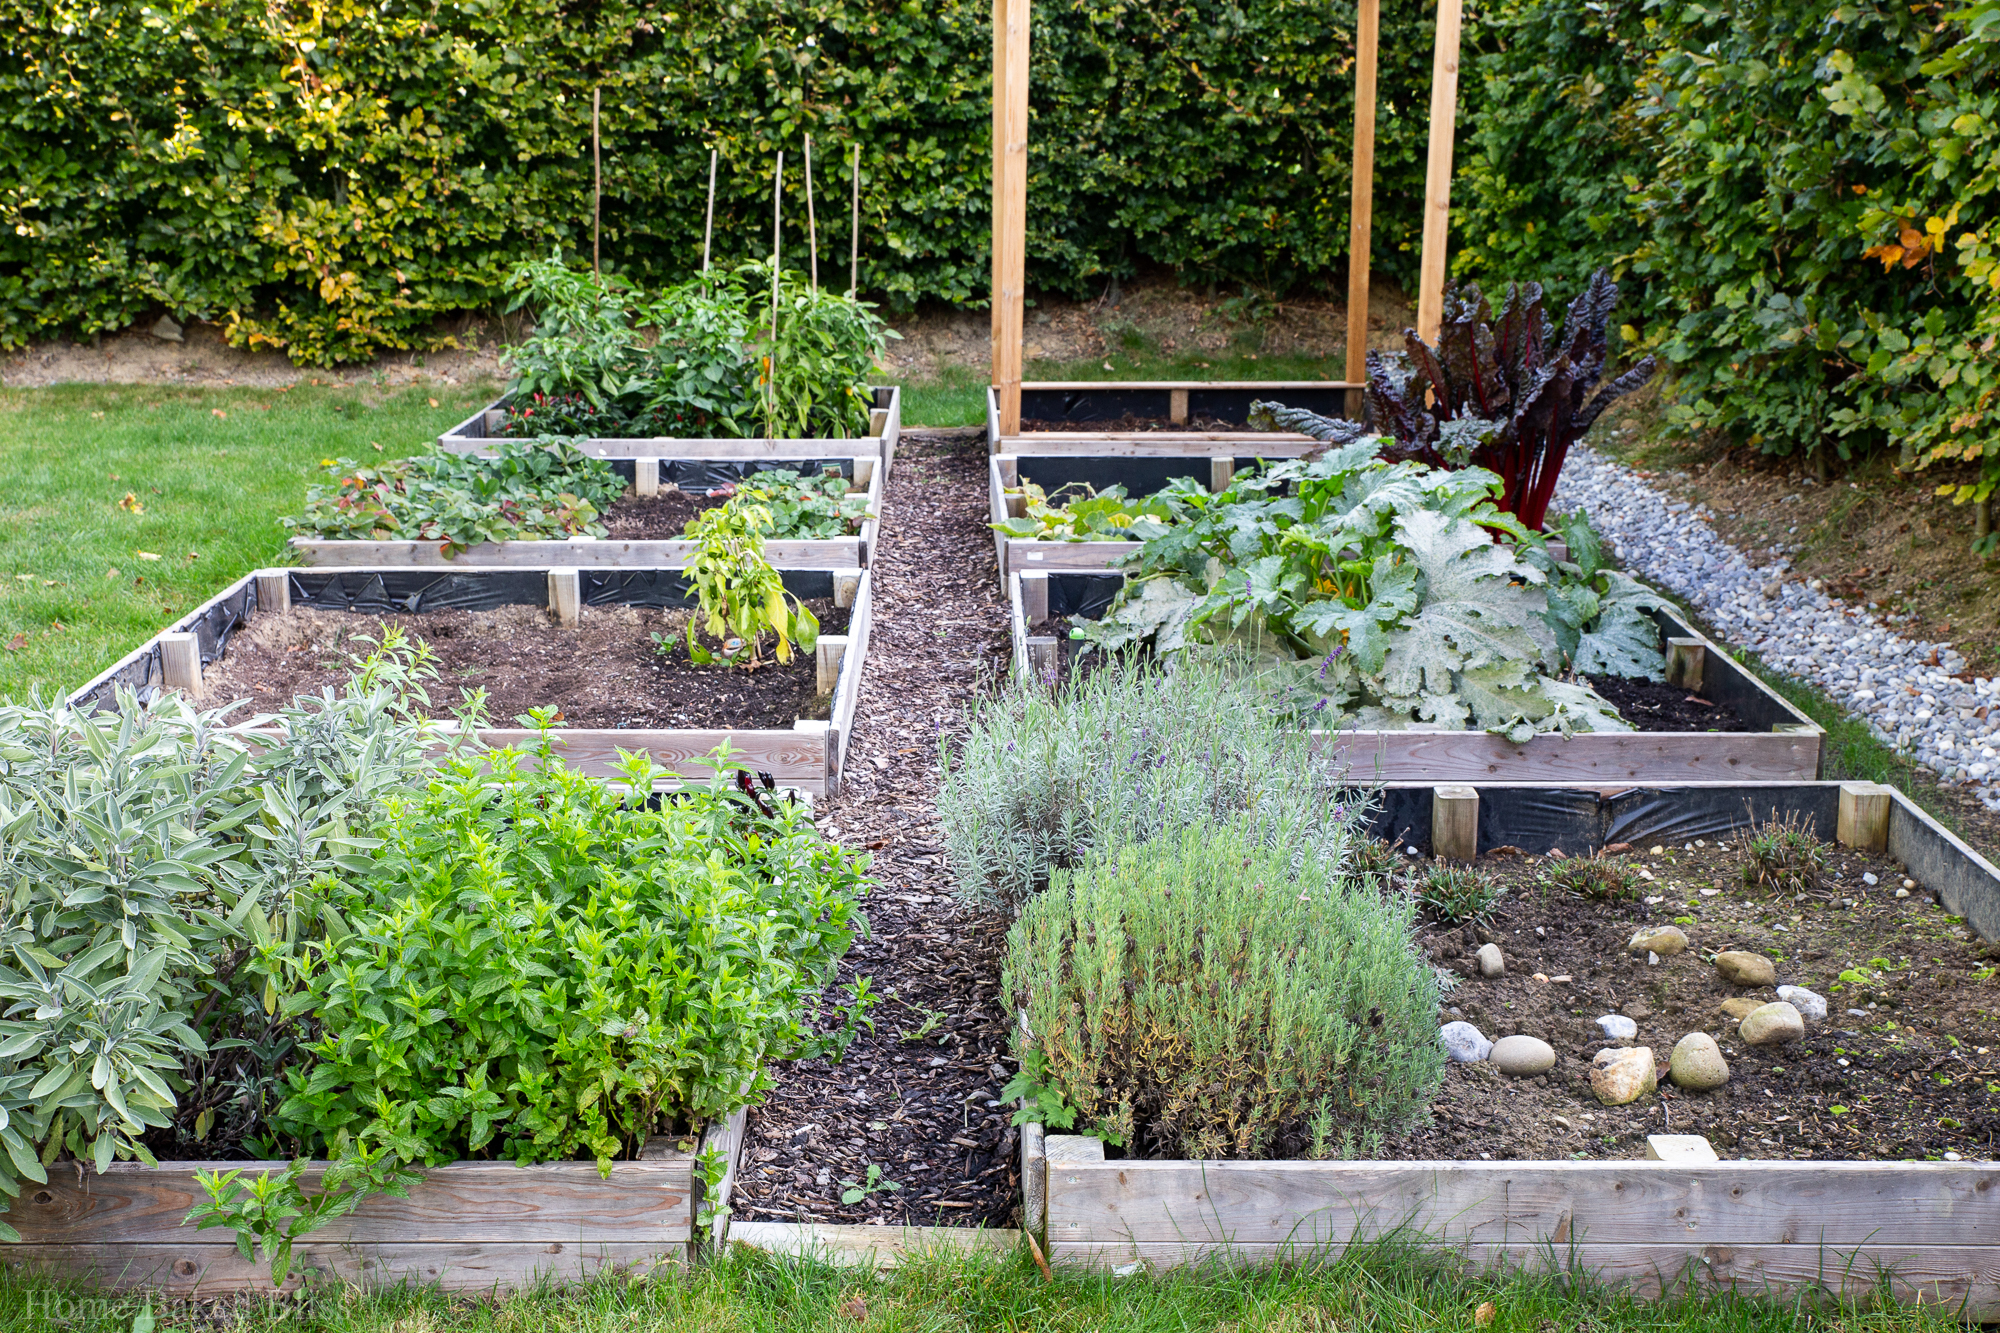 Overview of the vegetable beds